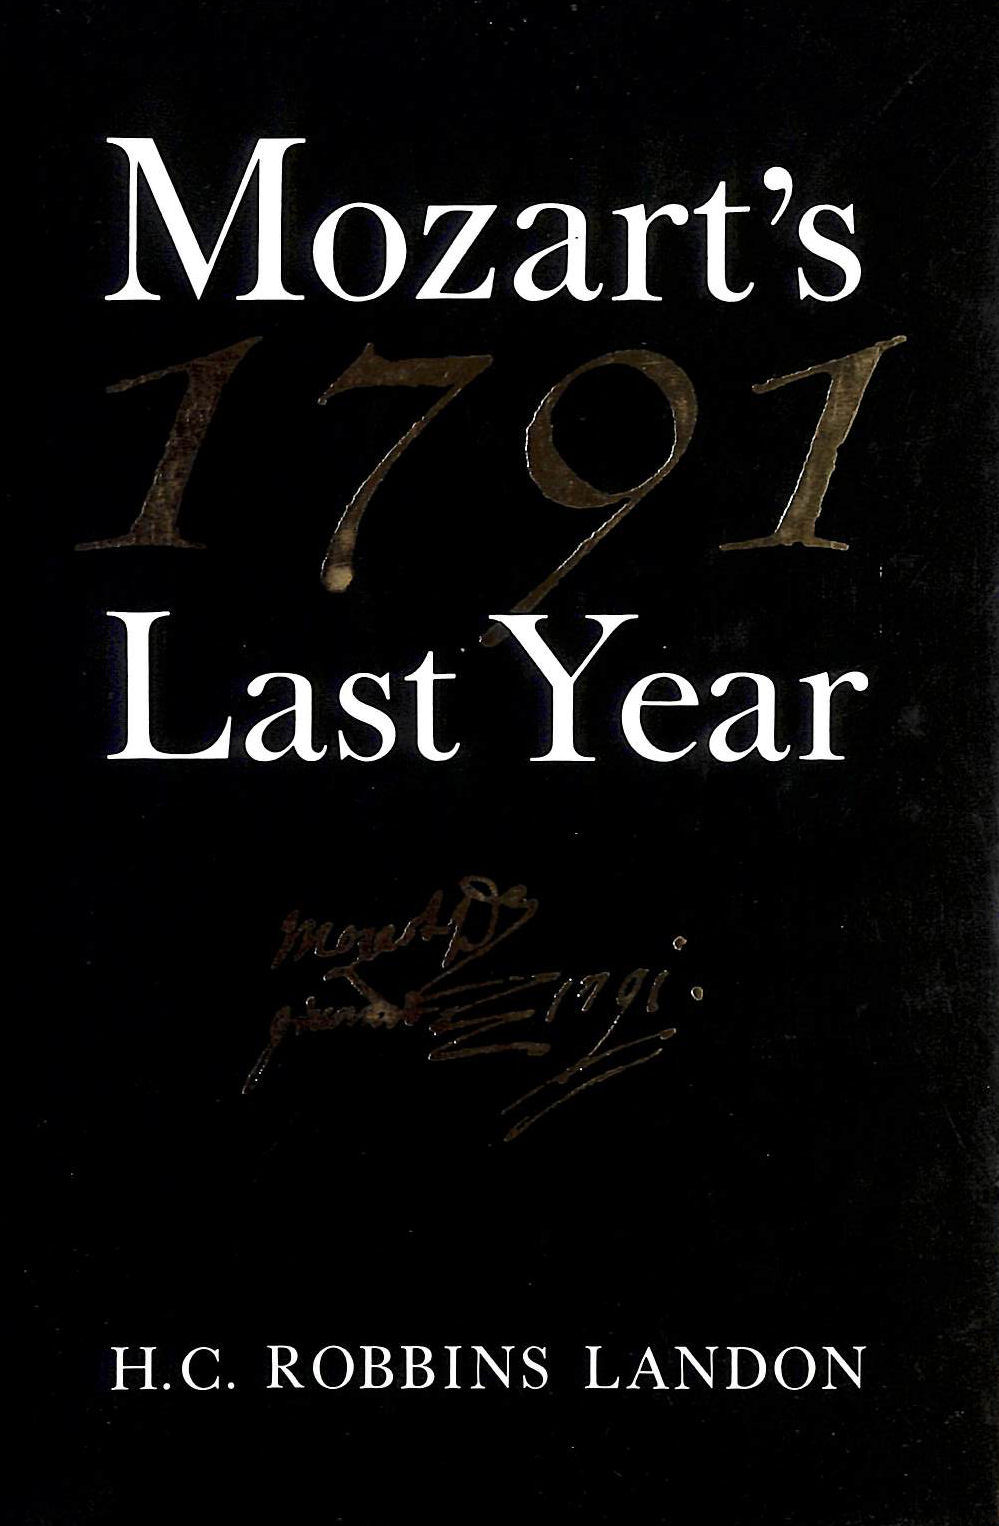 Image for 1791: Mozart's Last Year